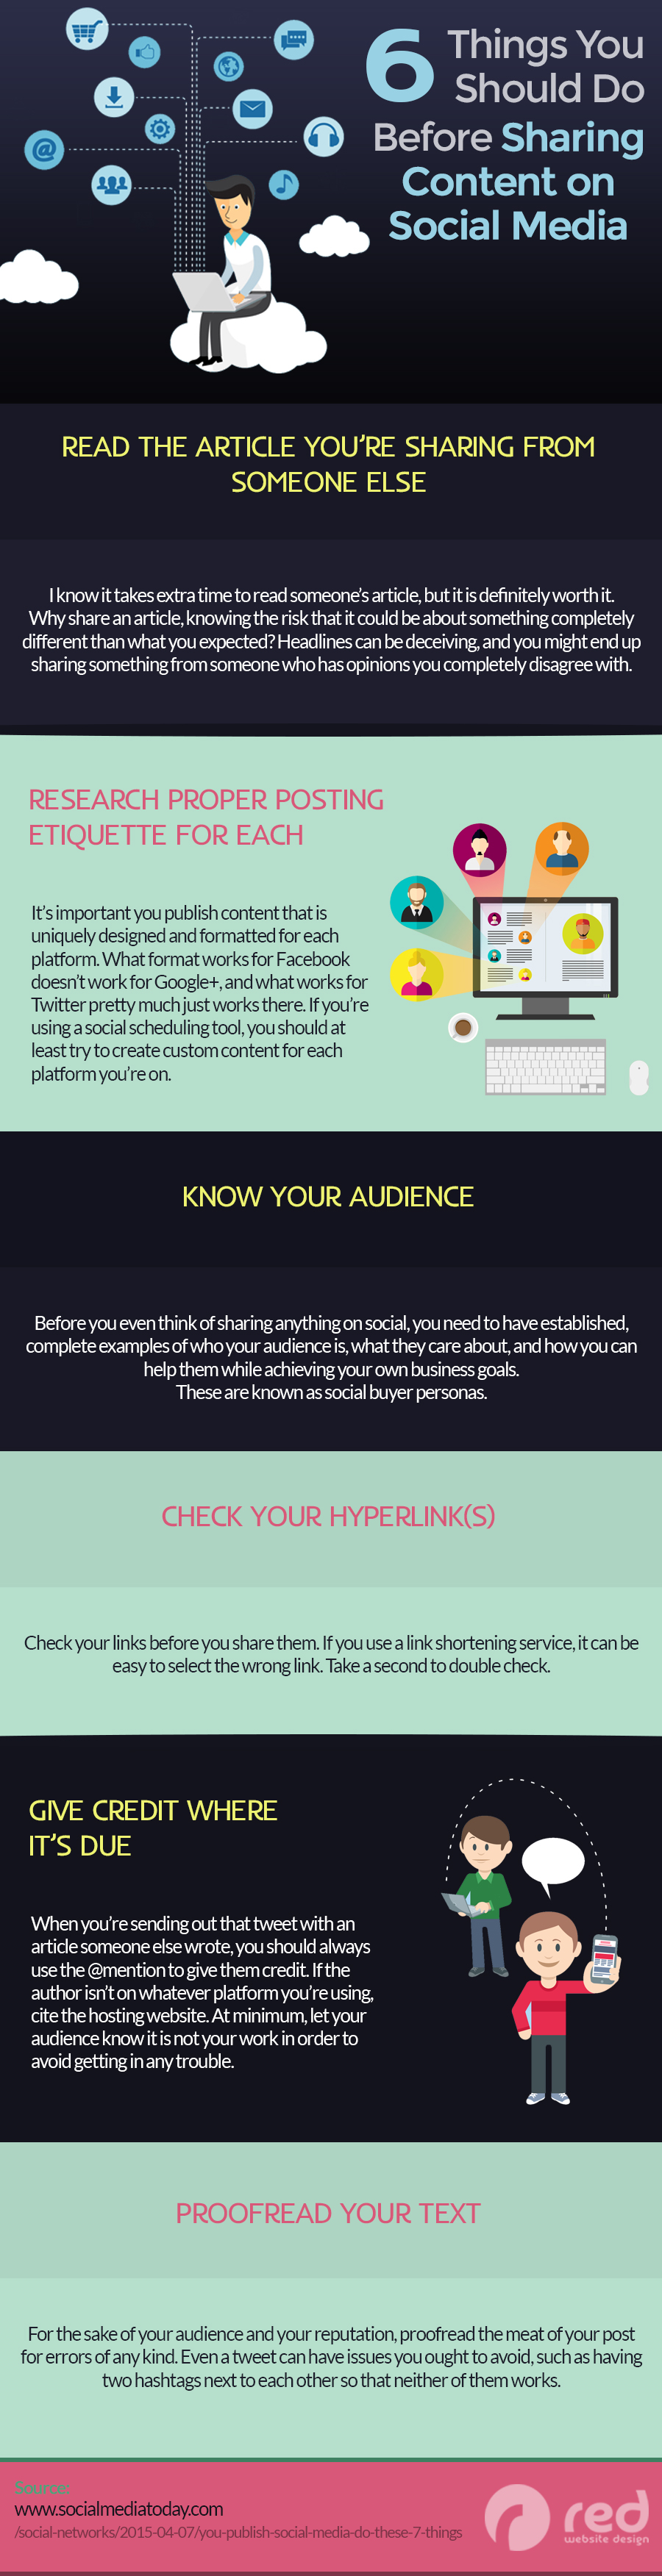 6-things-you-should-do-before-sharing-content-on-social-media1 (1)